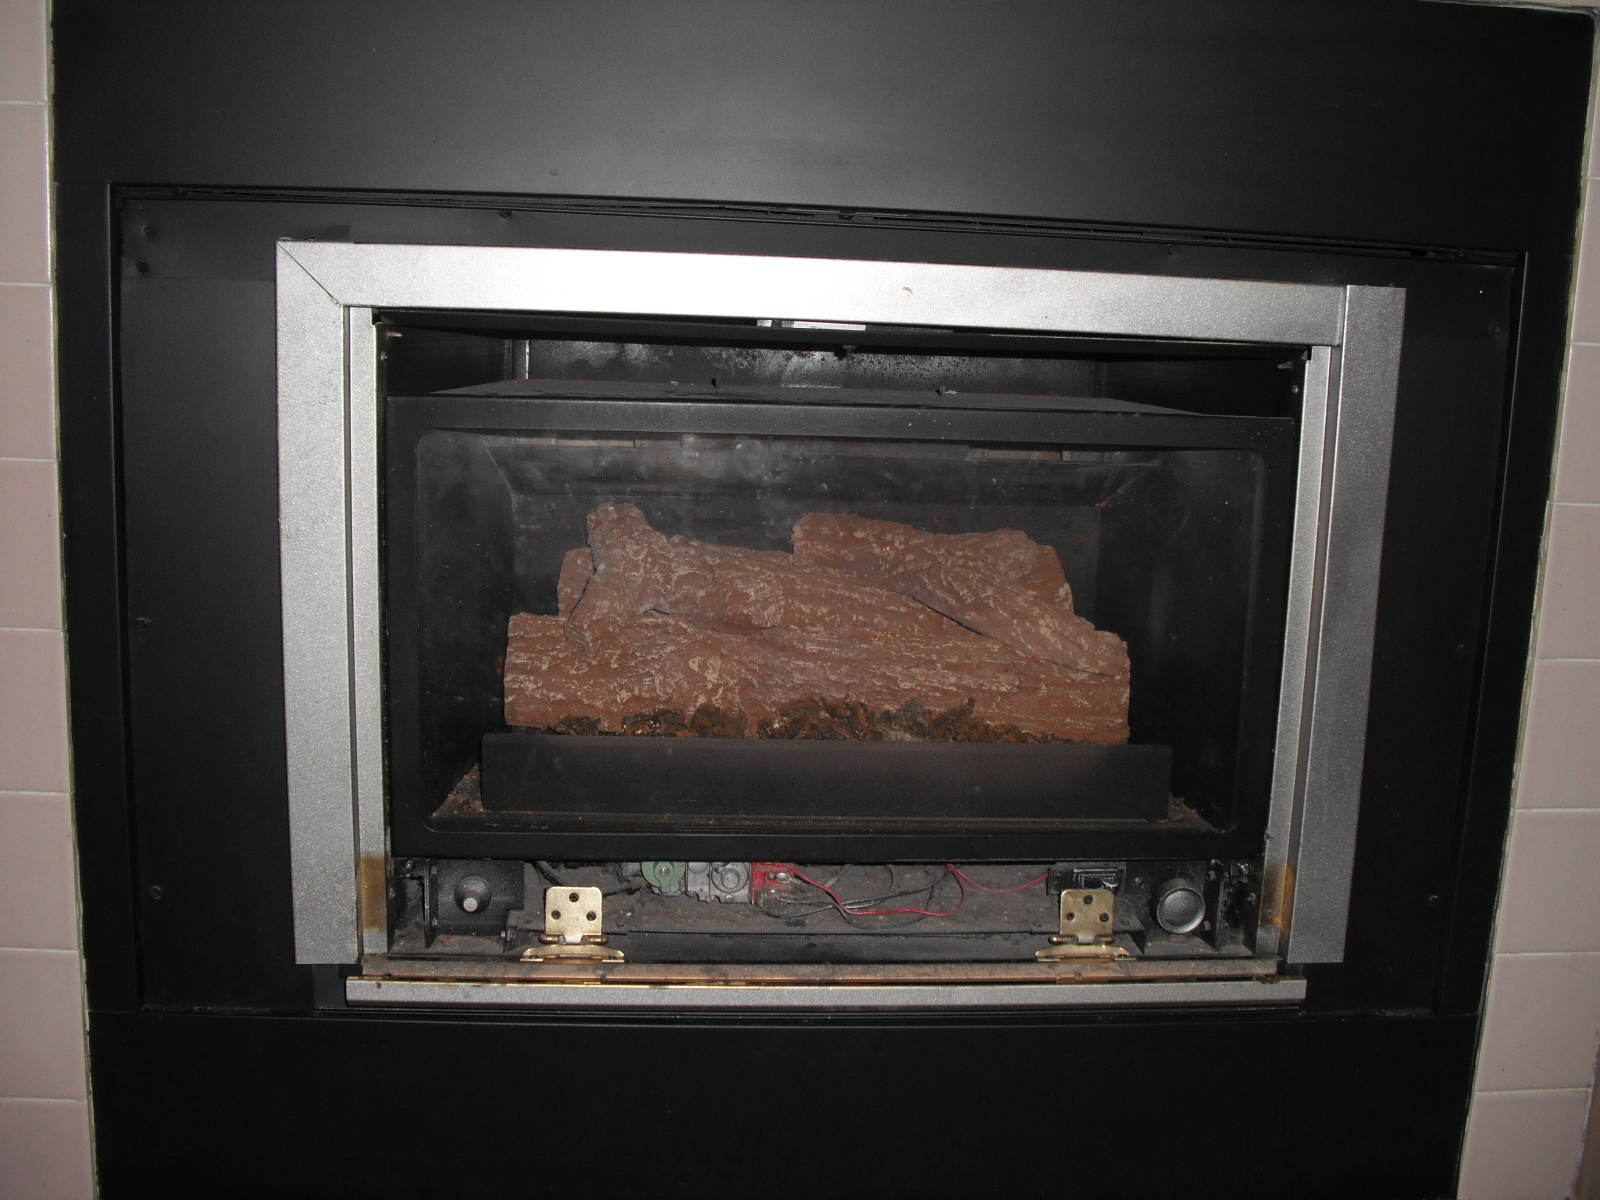 How do I close the Flue on my gas fireplace? (fireplaces, cleaning ...